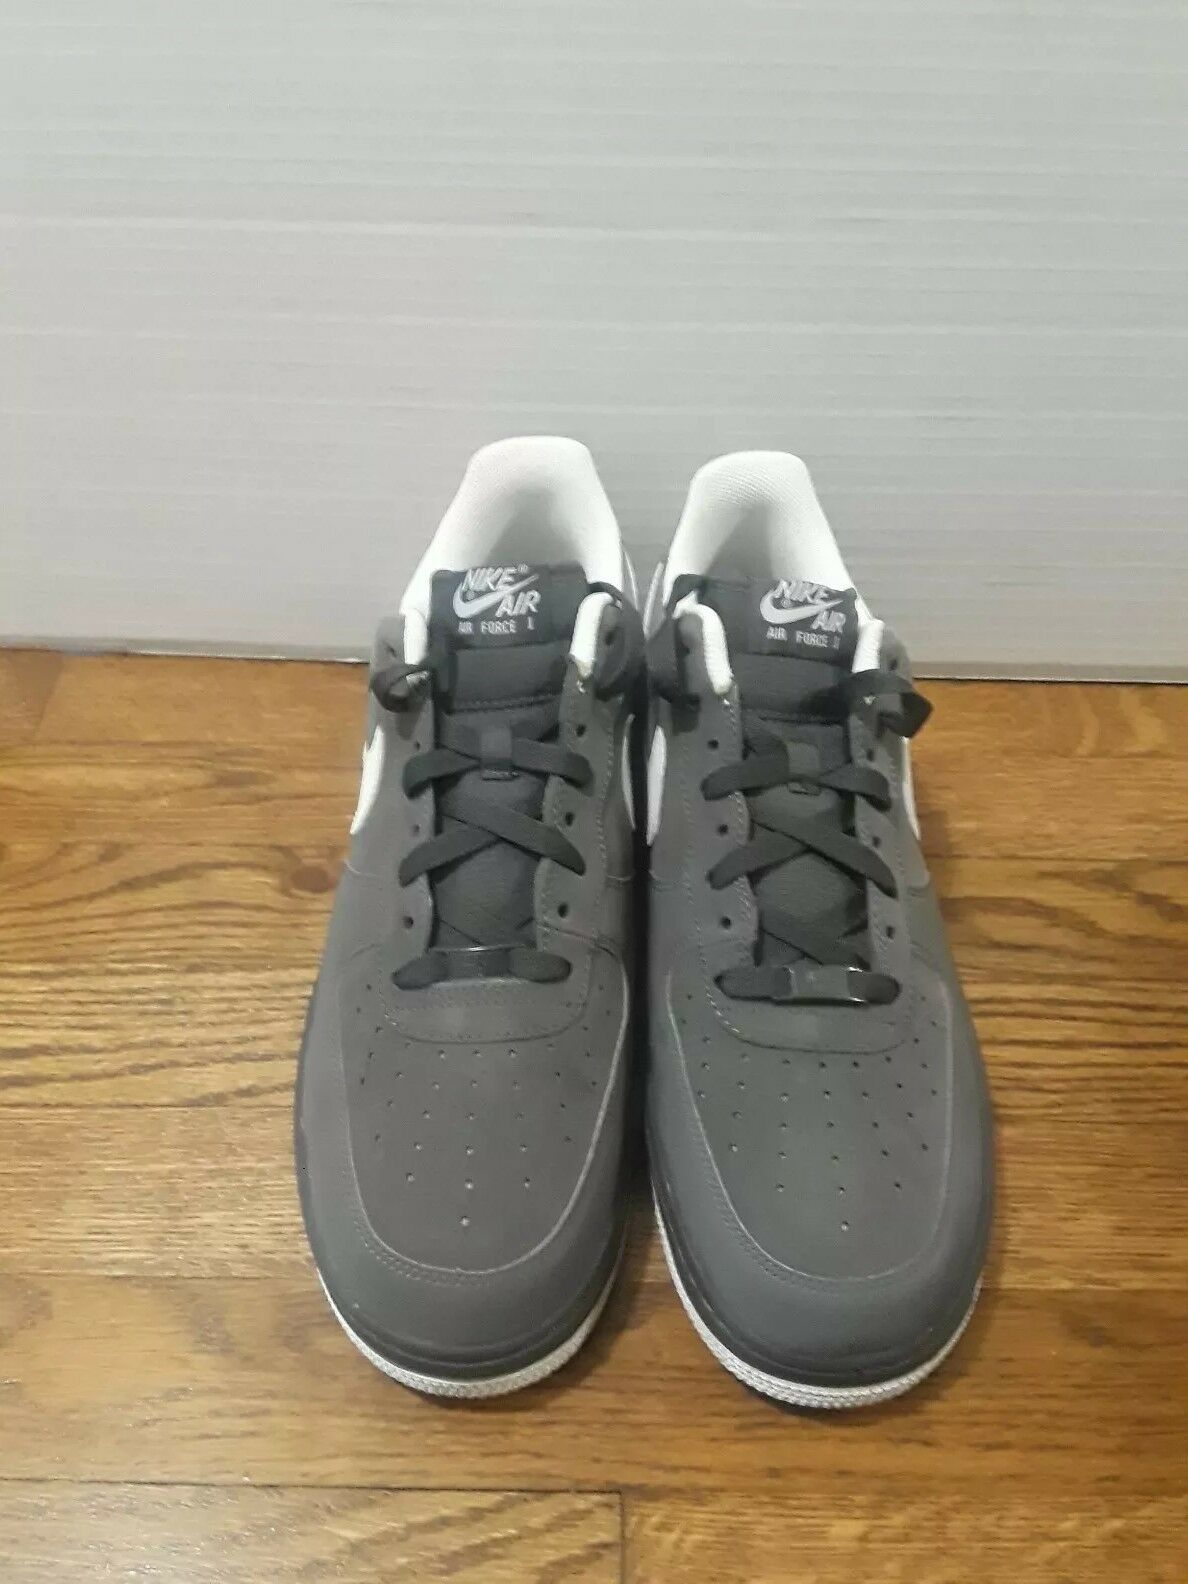 Mens nike air force 1 size 12